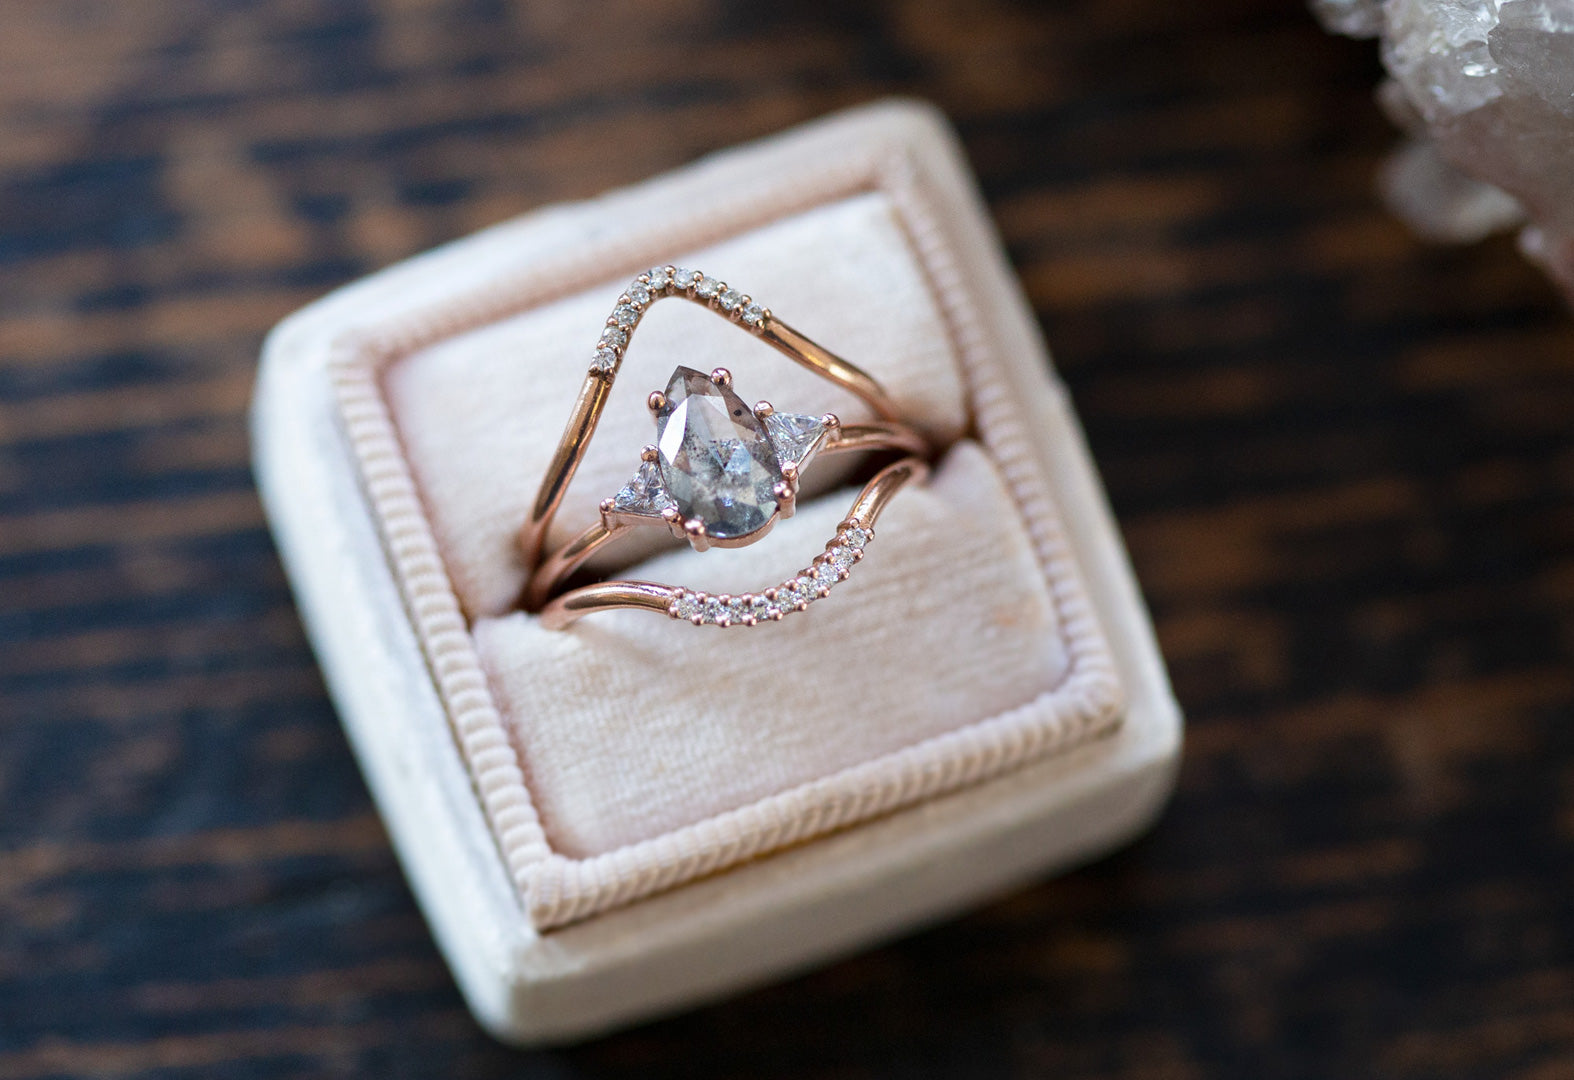 a incredibly special, one of a kind diamond engagement ring